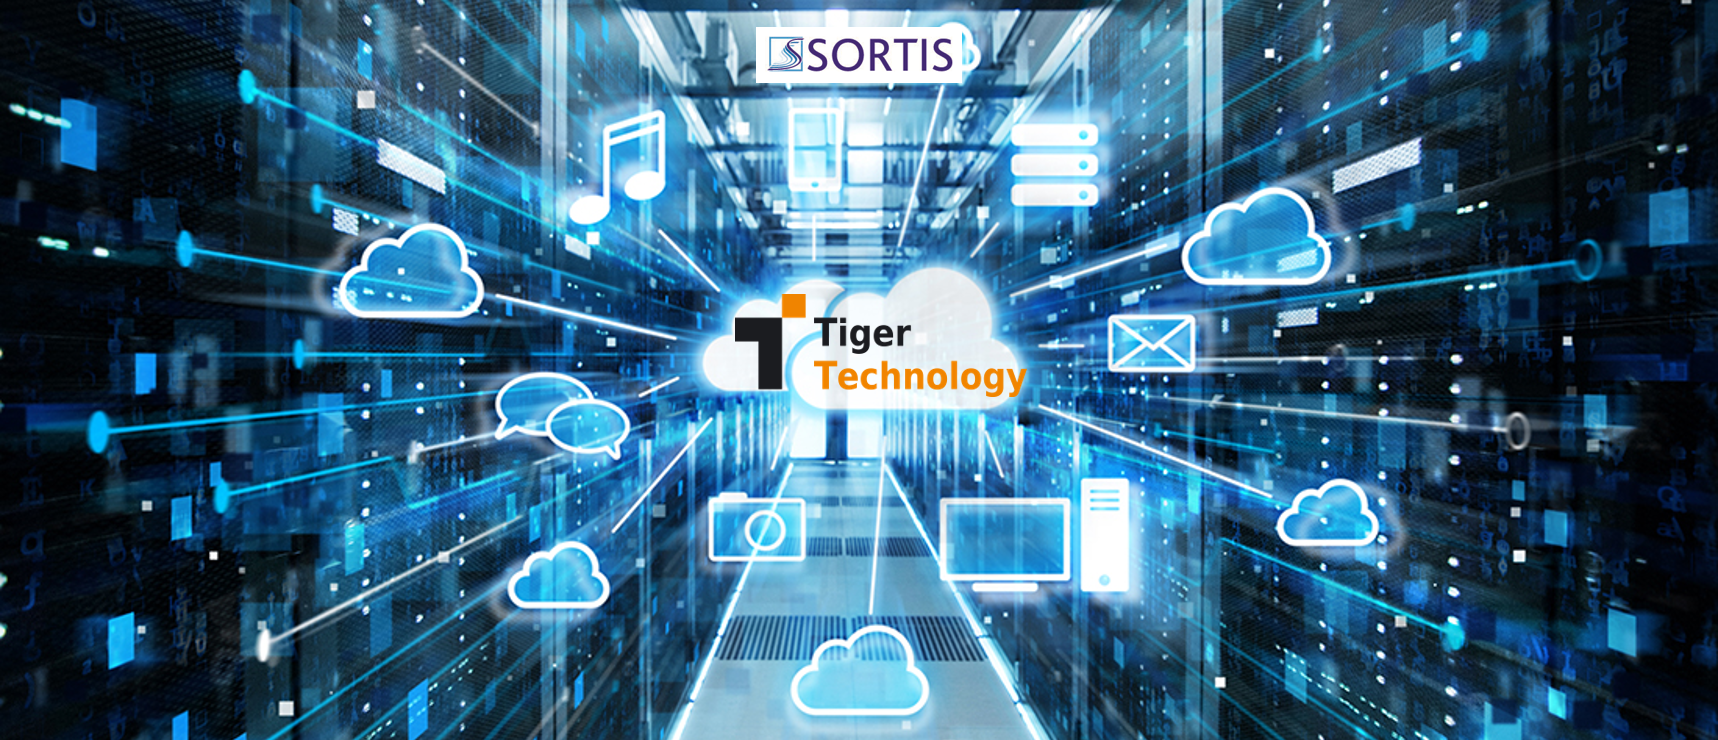 Bulgarian Cloud Technology Provider Tiger Technology Raised €2.3 M from Business Angels